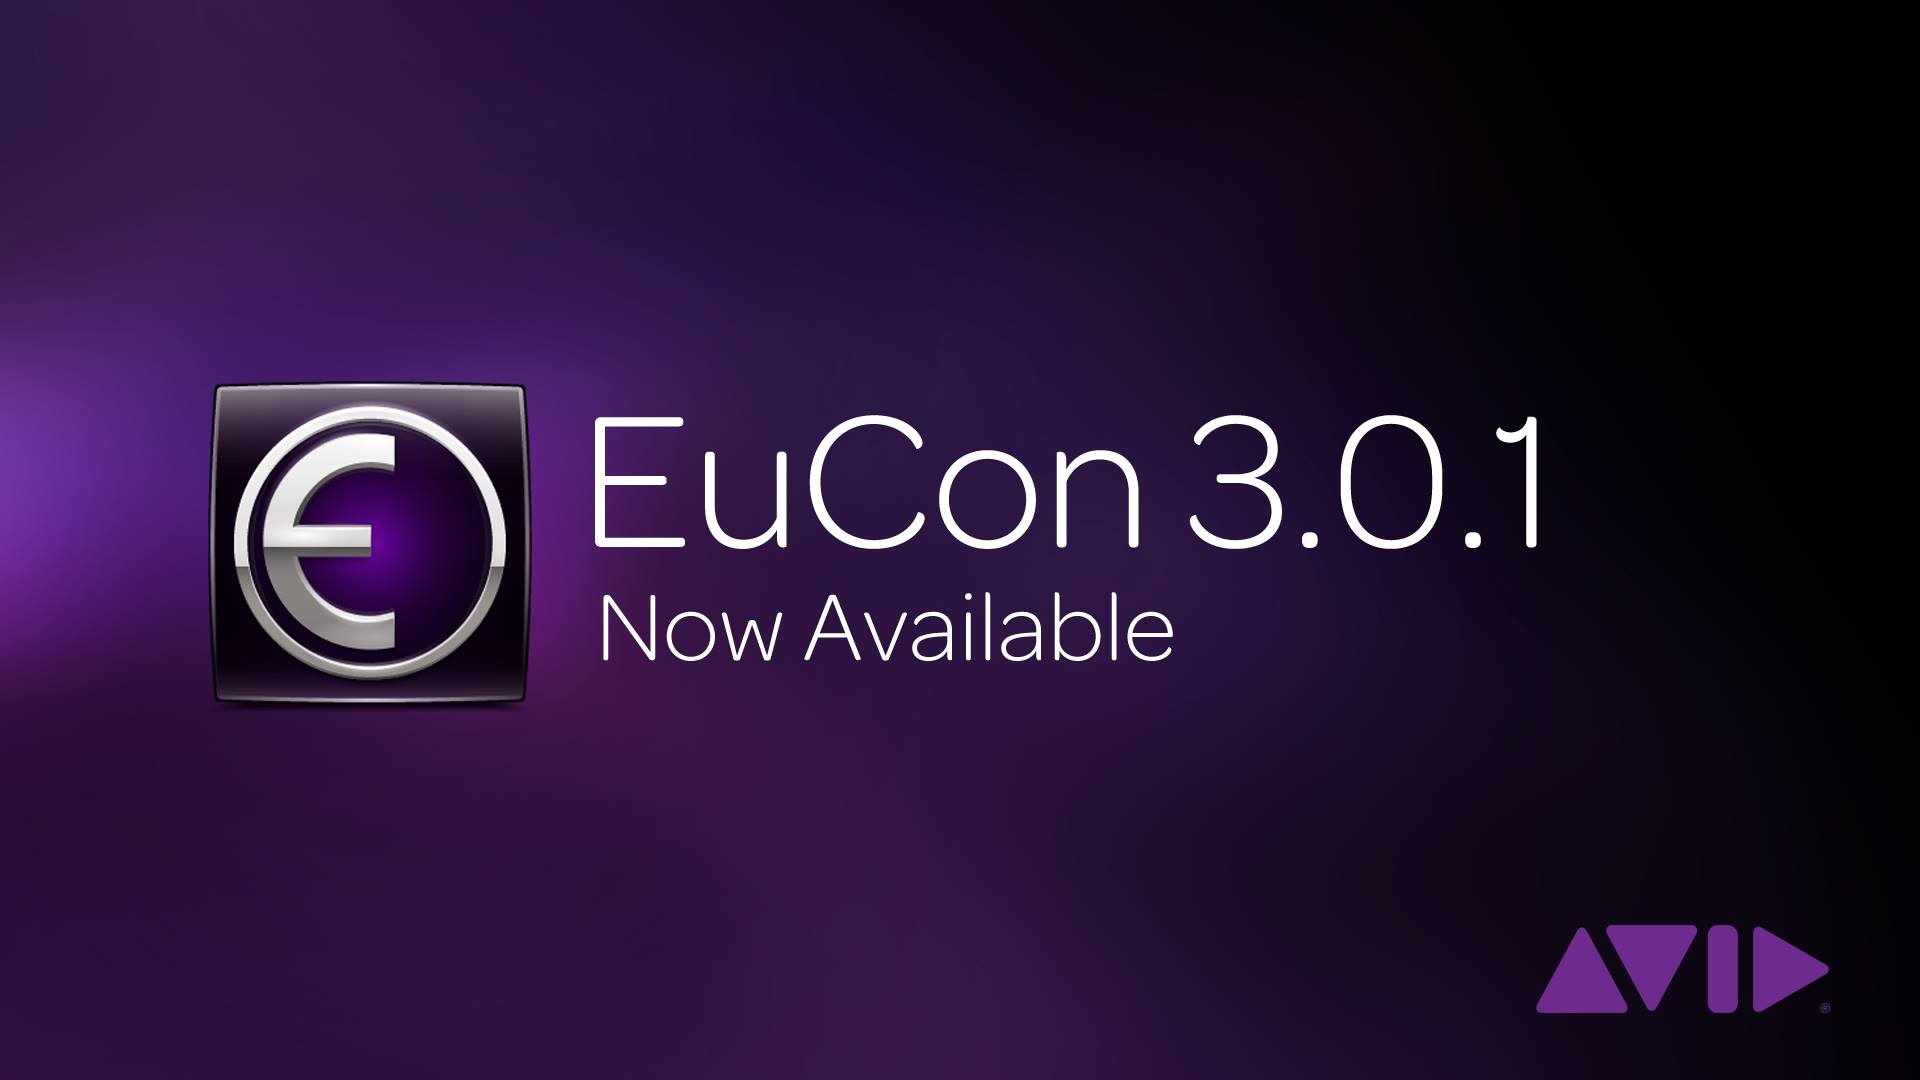 Working with Avid Artist Series (Control, Mix, Transport or Color?) New Eucon 3.01 4